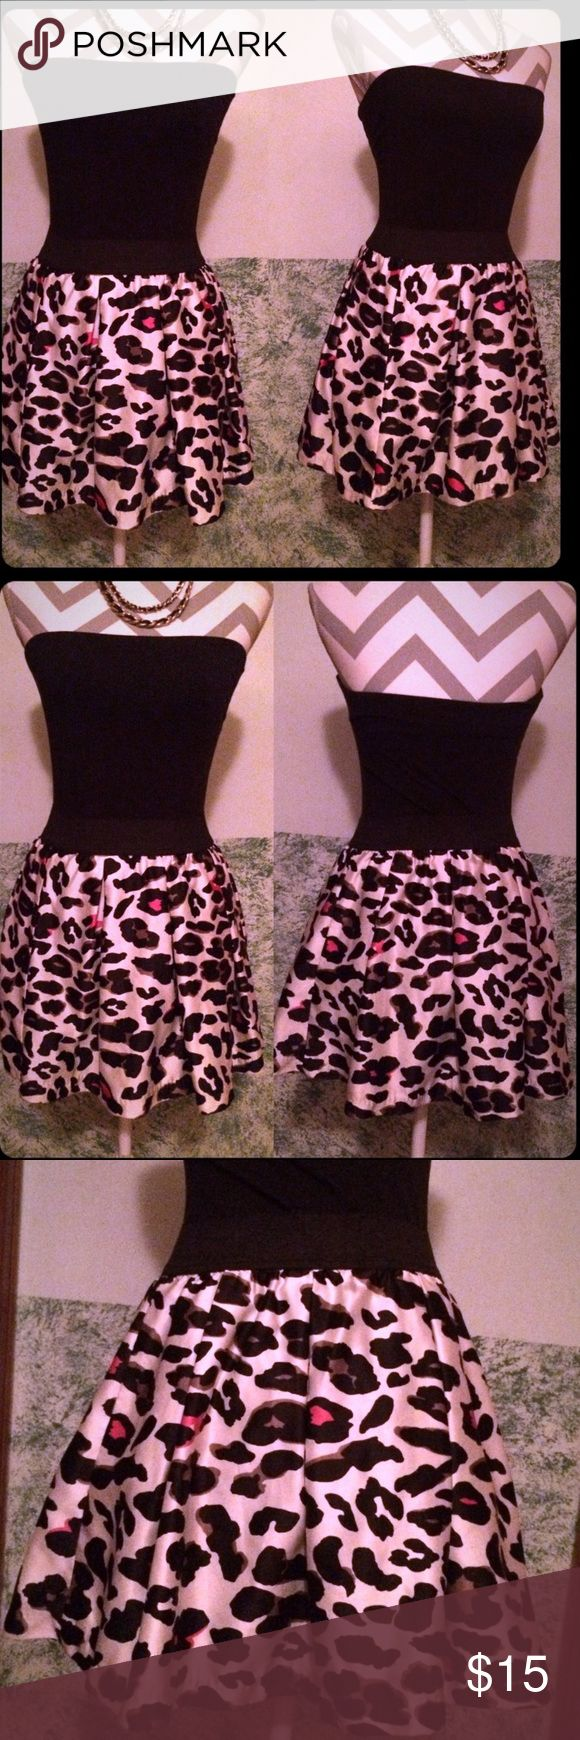 2 for 1! Express black tube top and leopard skirt This listing is for BOTH items shown.  One XS Express basic black strapless top with shelf bra insert.  Second, XS satiny leopard print mini skirt from forever 21 with black stretchy band waist and black lining.  Skirt is a cream color with black and pink leopard print.  Cute outfit together, basic black top is versatile. Express Skirts Skirt Sets